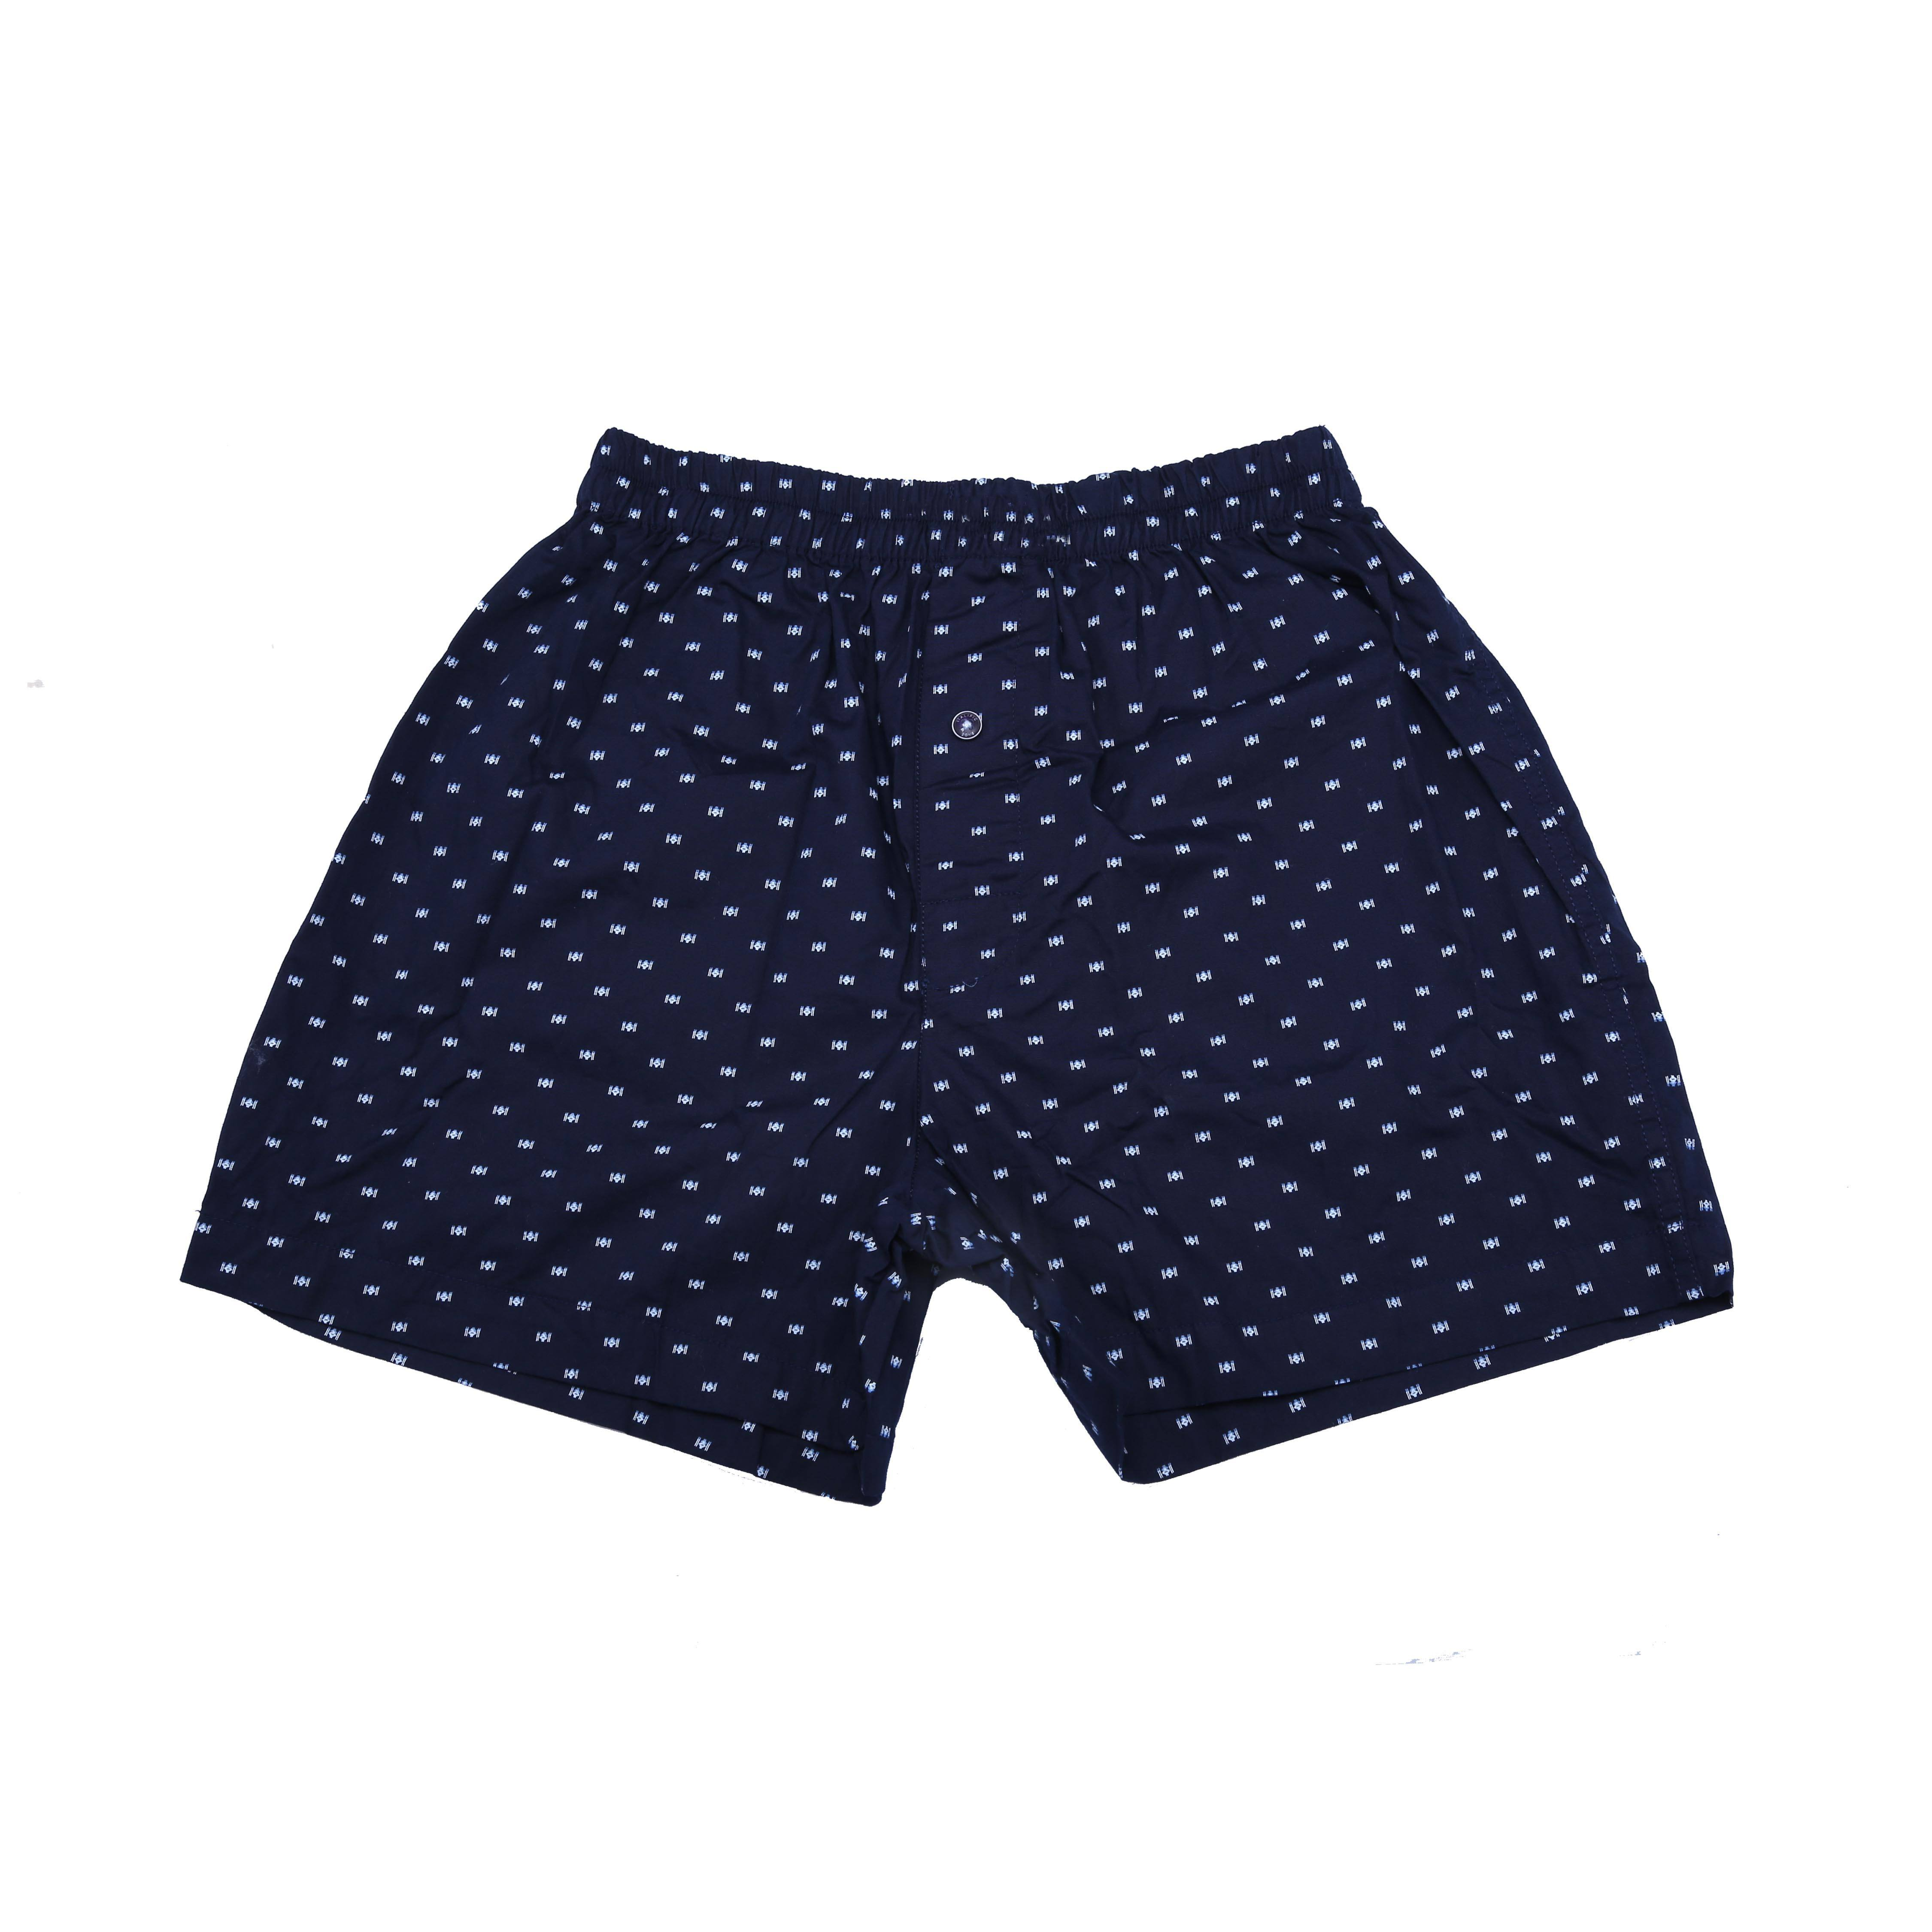 Men's cotton woven boxer short's / underwear short